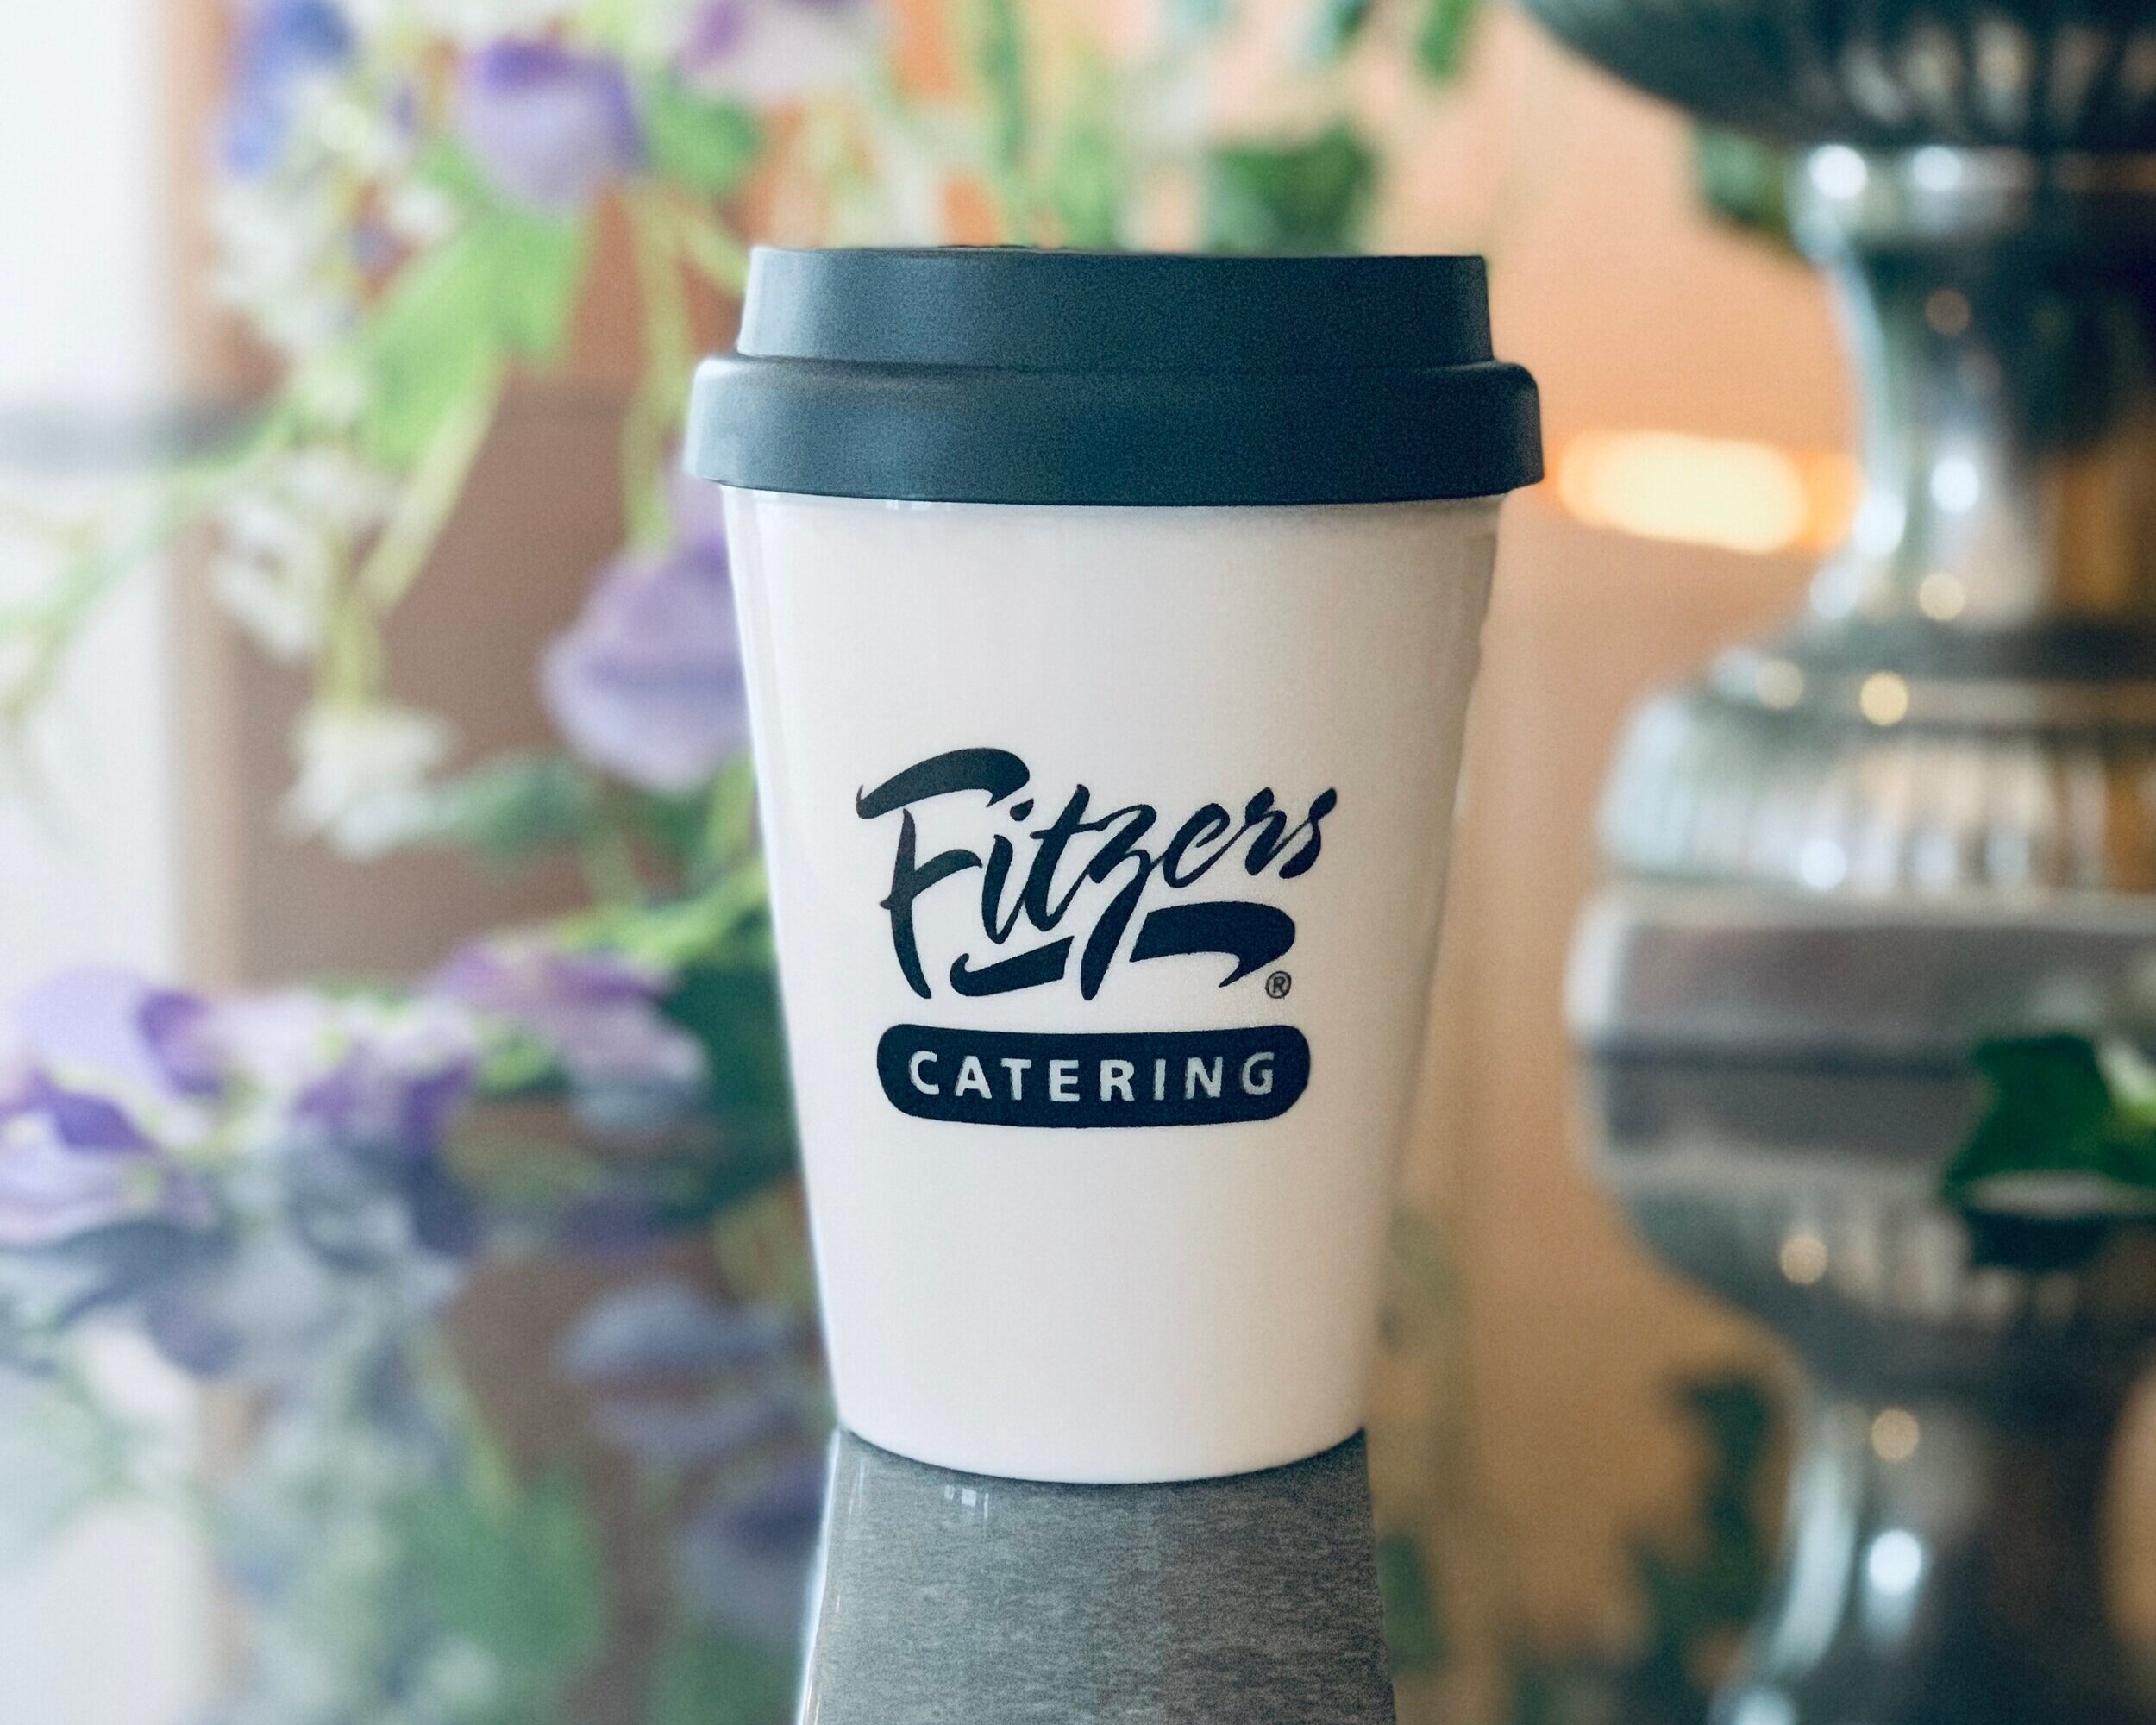 Fitzers+Cup.jpg